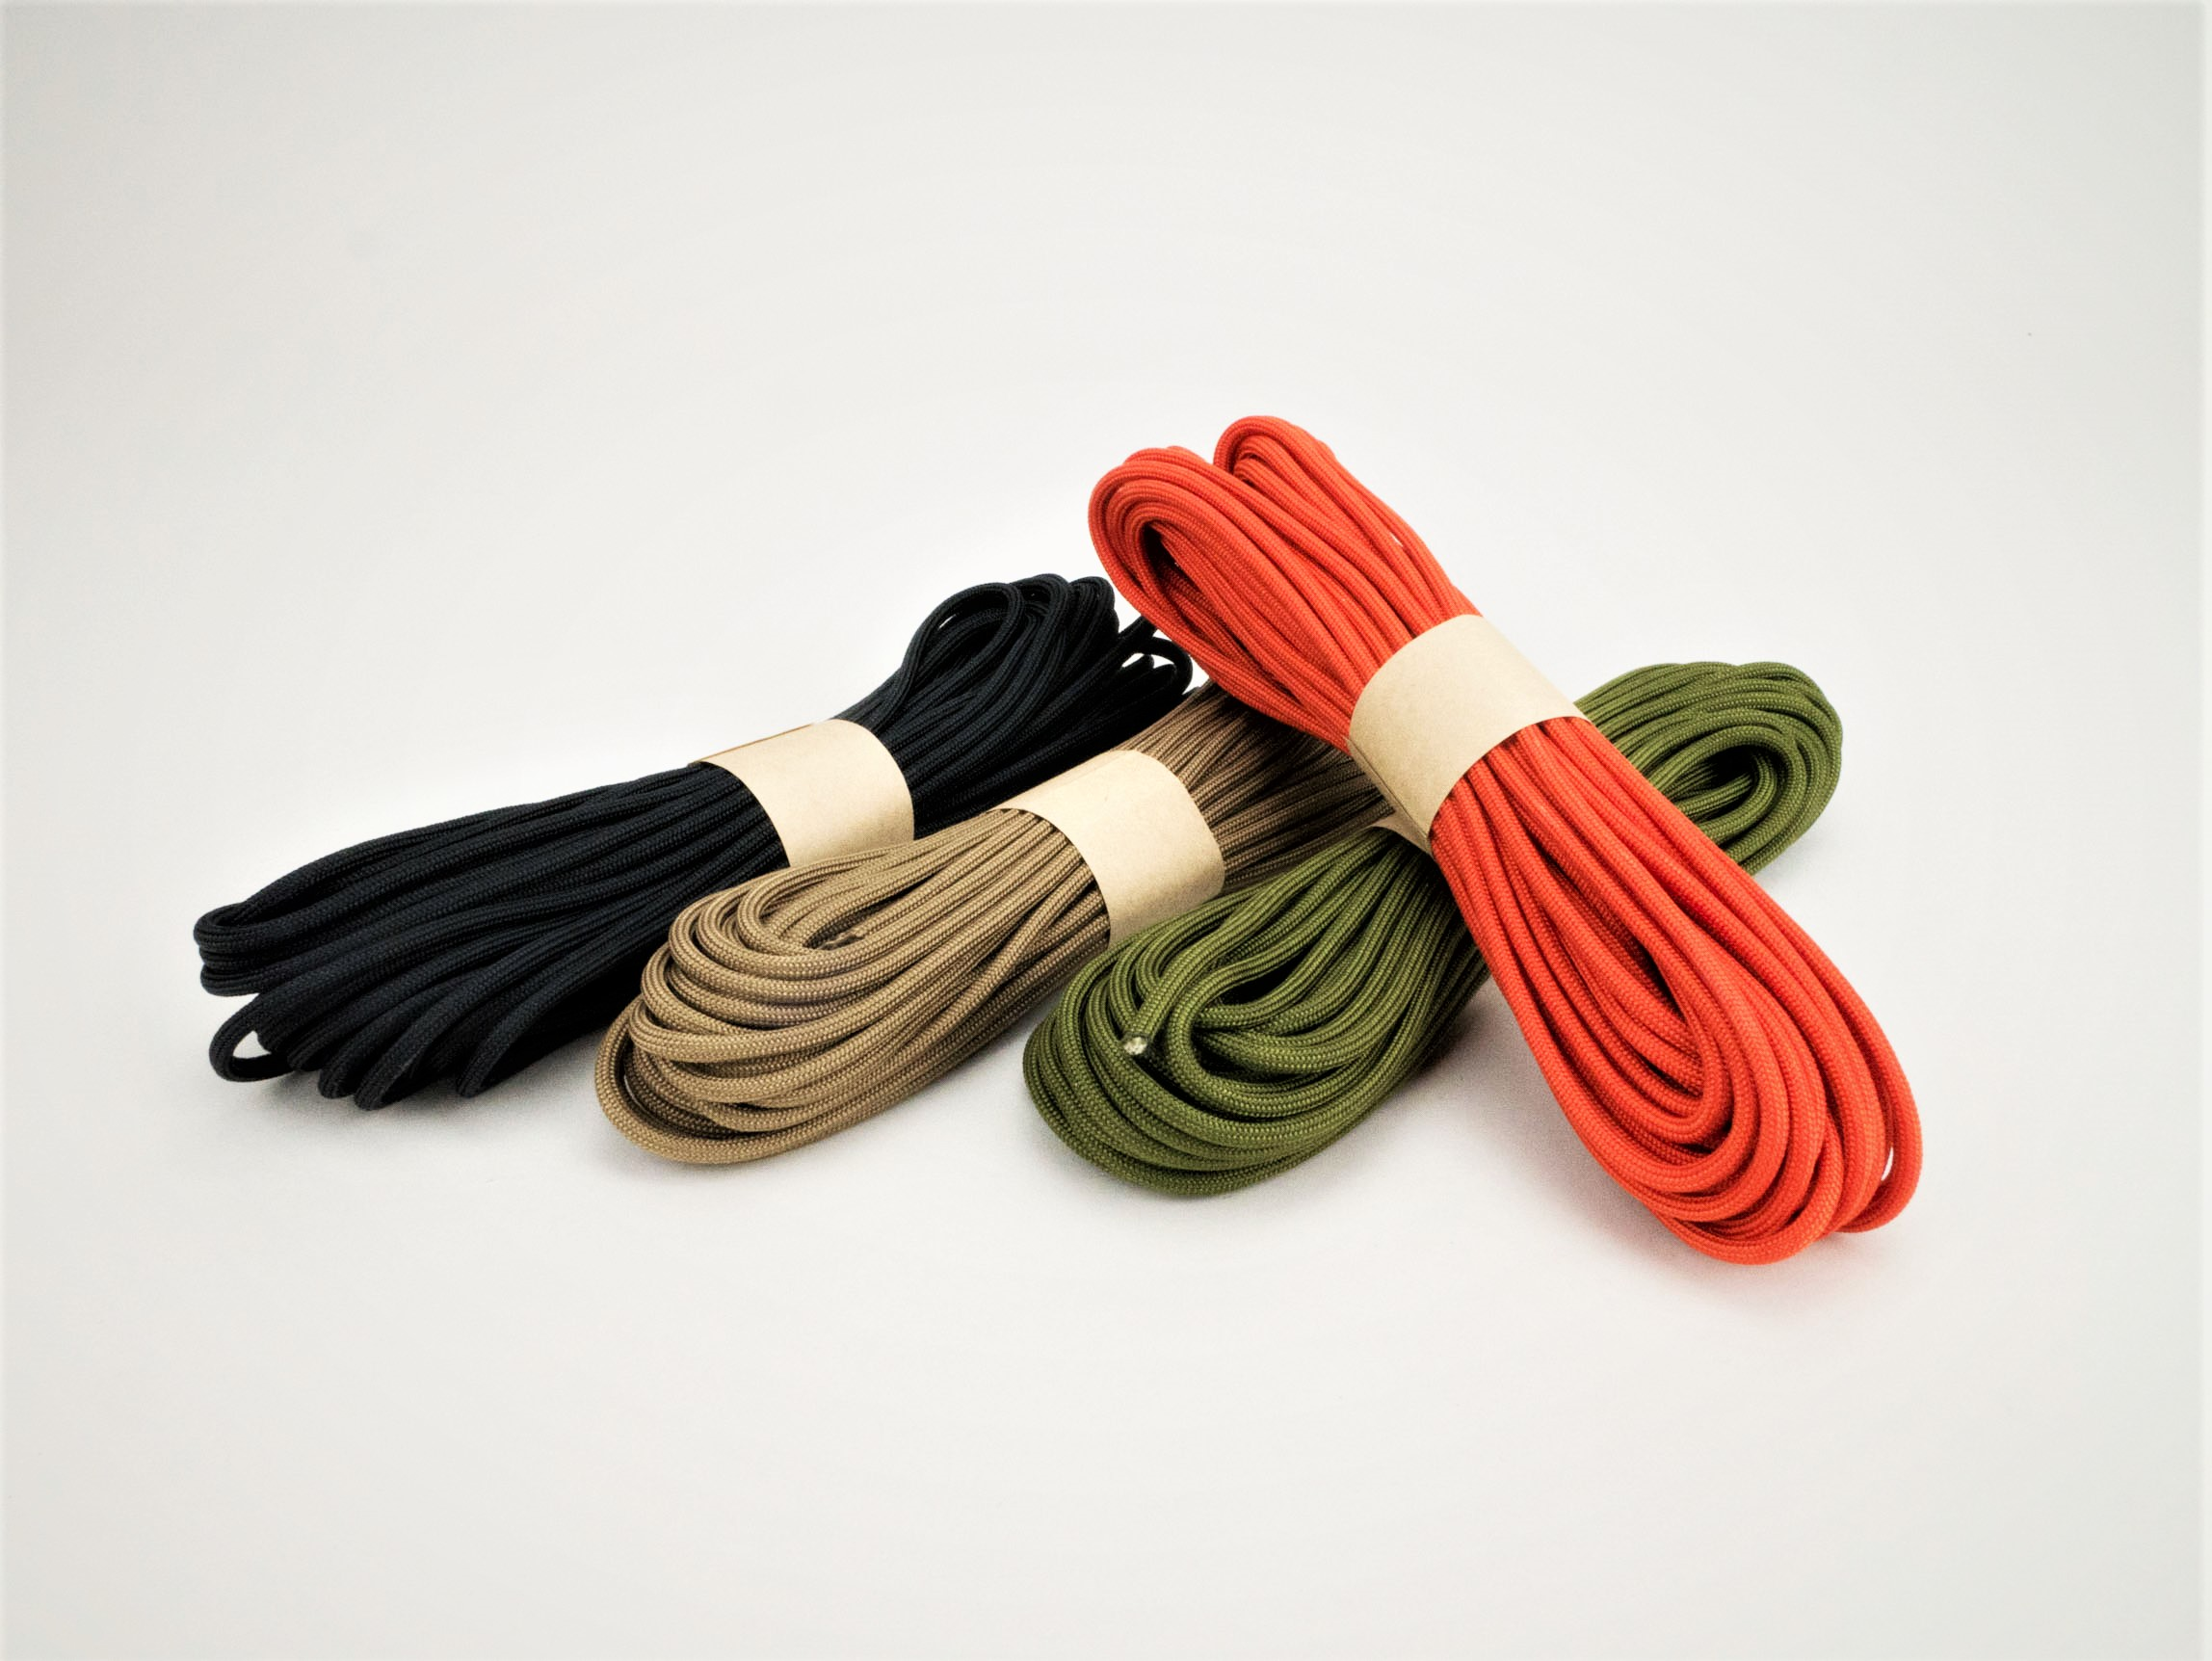 ORIGINAL 550 PARACORD € 12,95